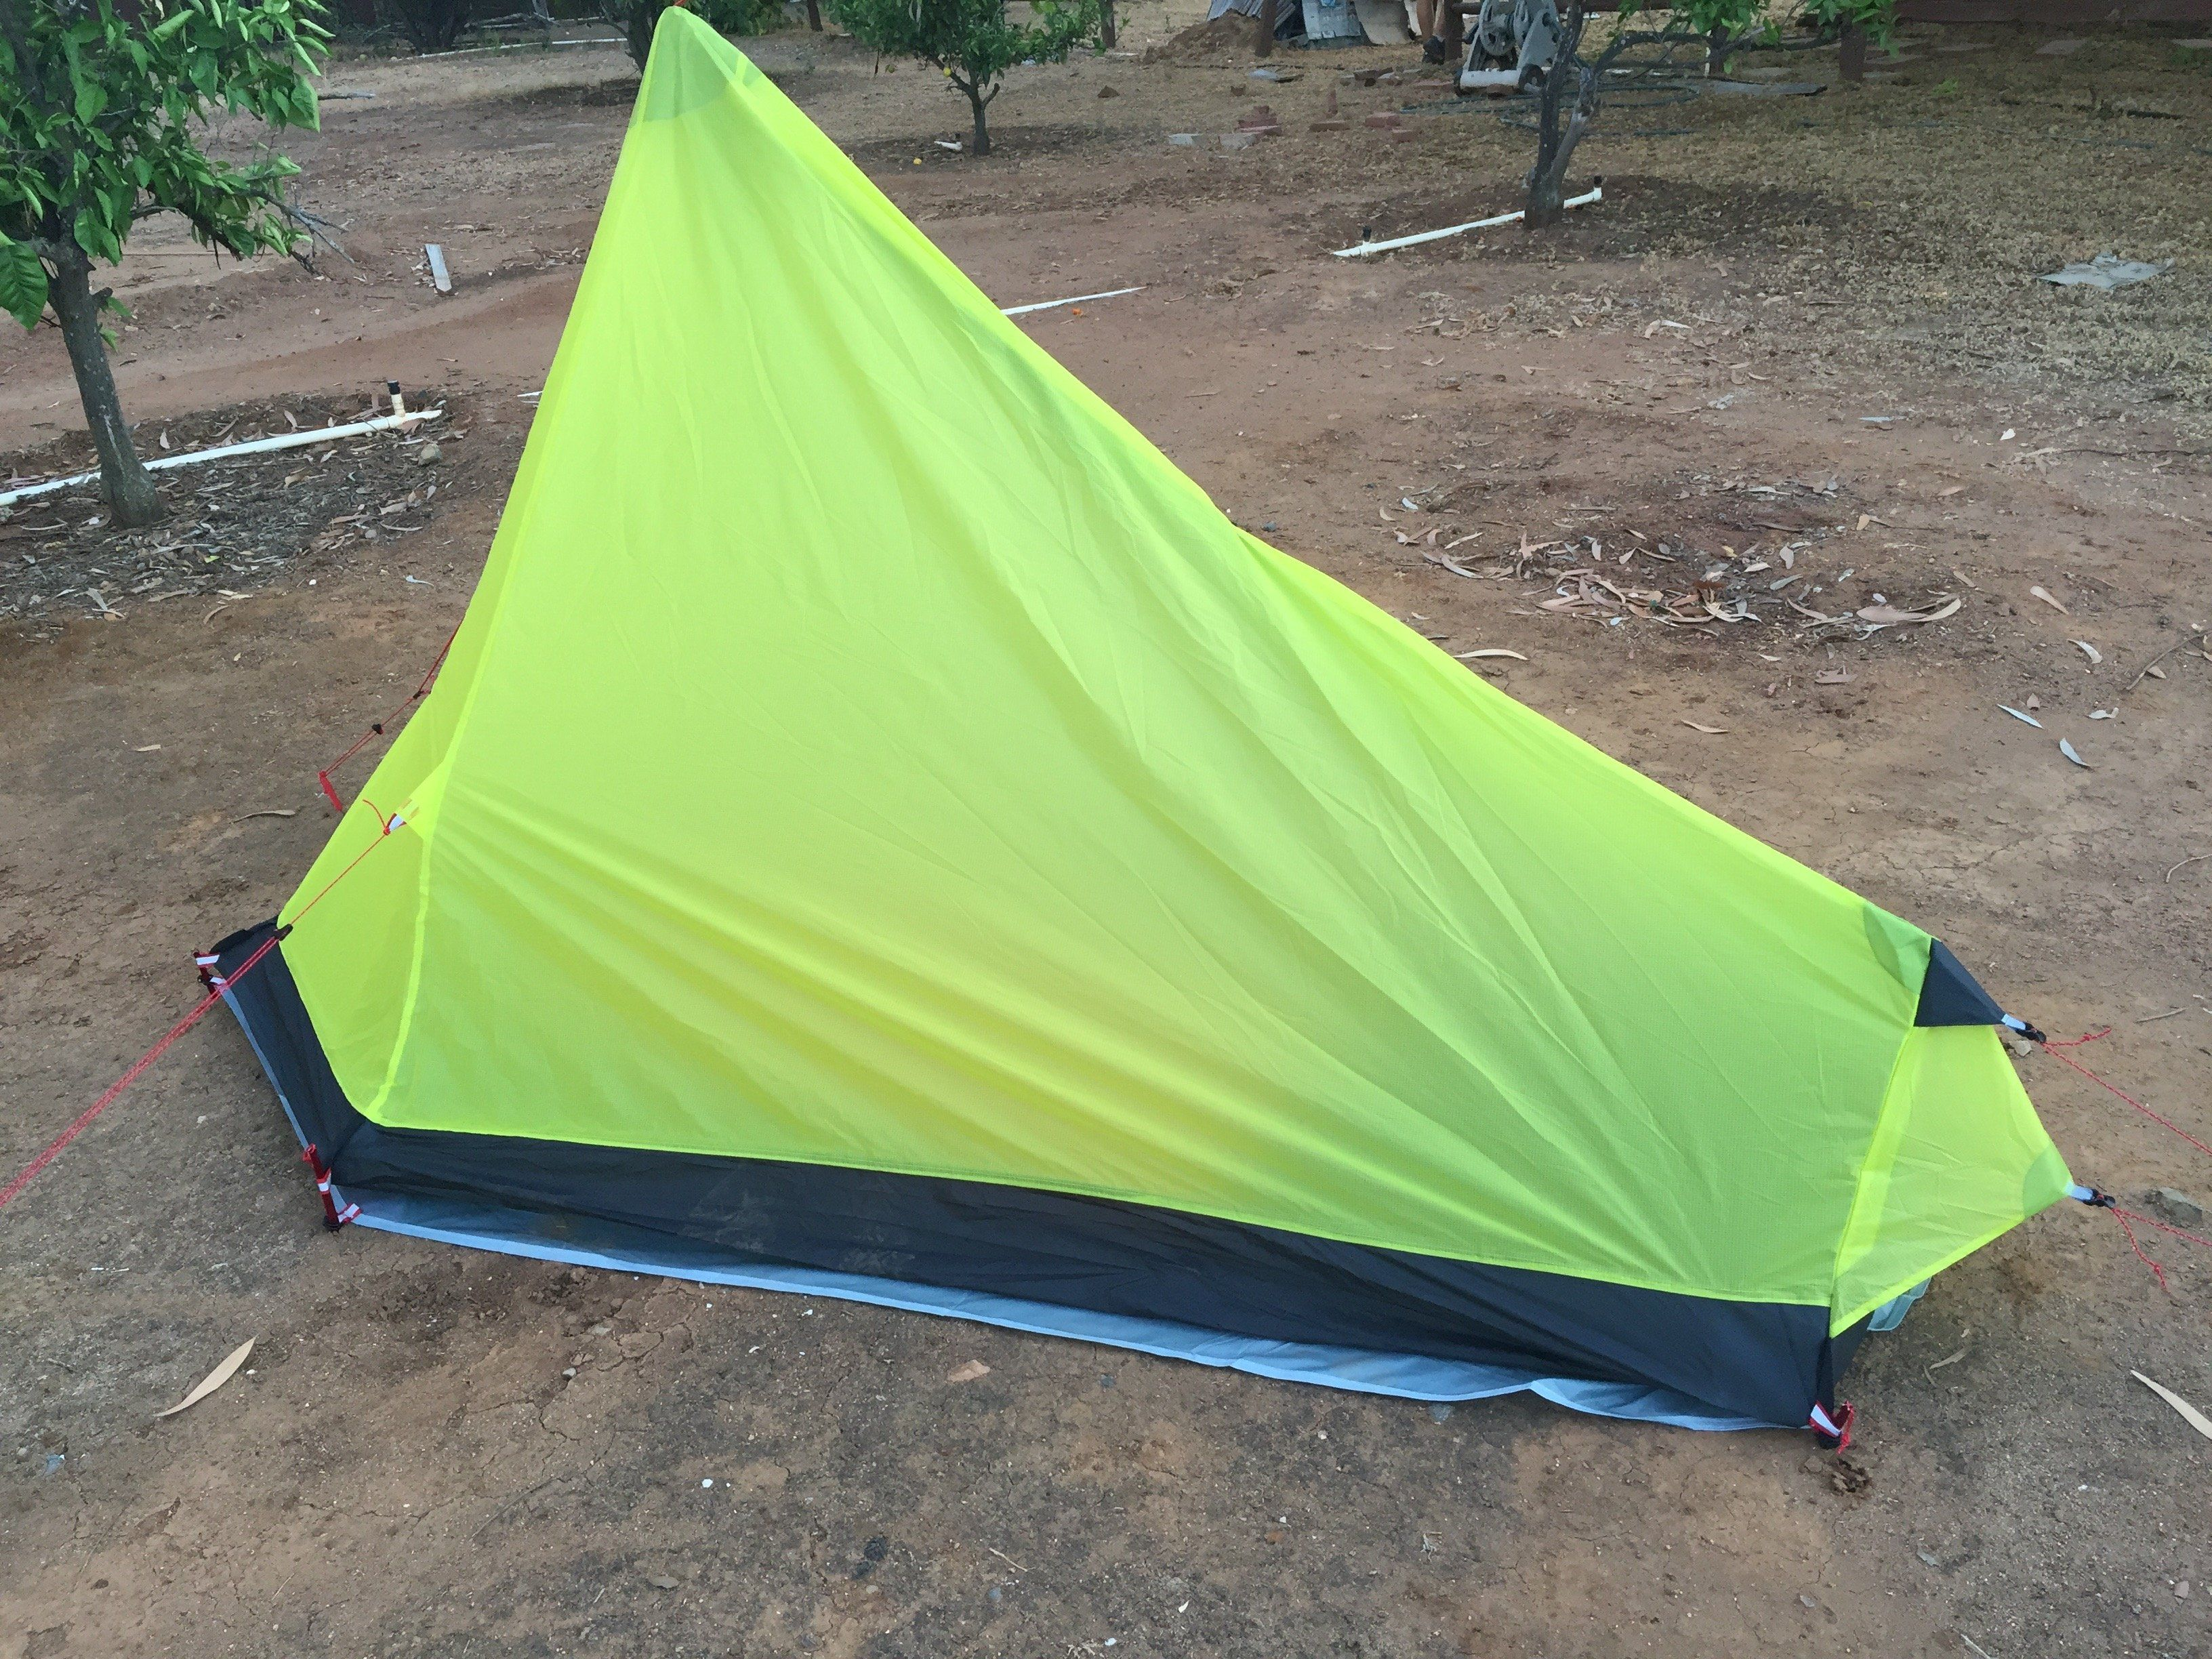 1 Layer Tent The Inner Mesh Tent Is Sewed With The Rainfly The Door Side Of The Tent Is 2 Layered With A Mesh Door Backpacking Tent Diy Tent Camping Tent